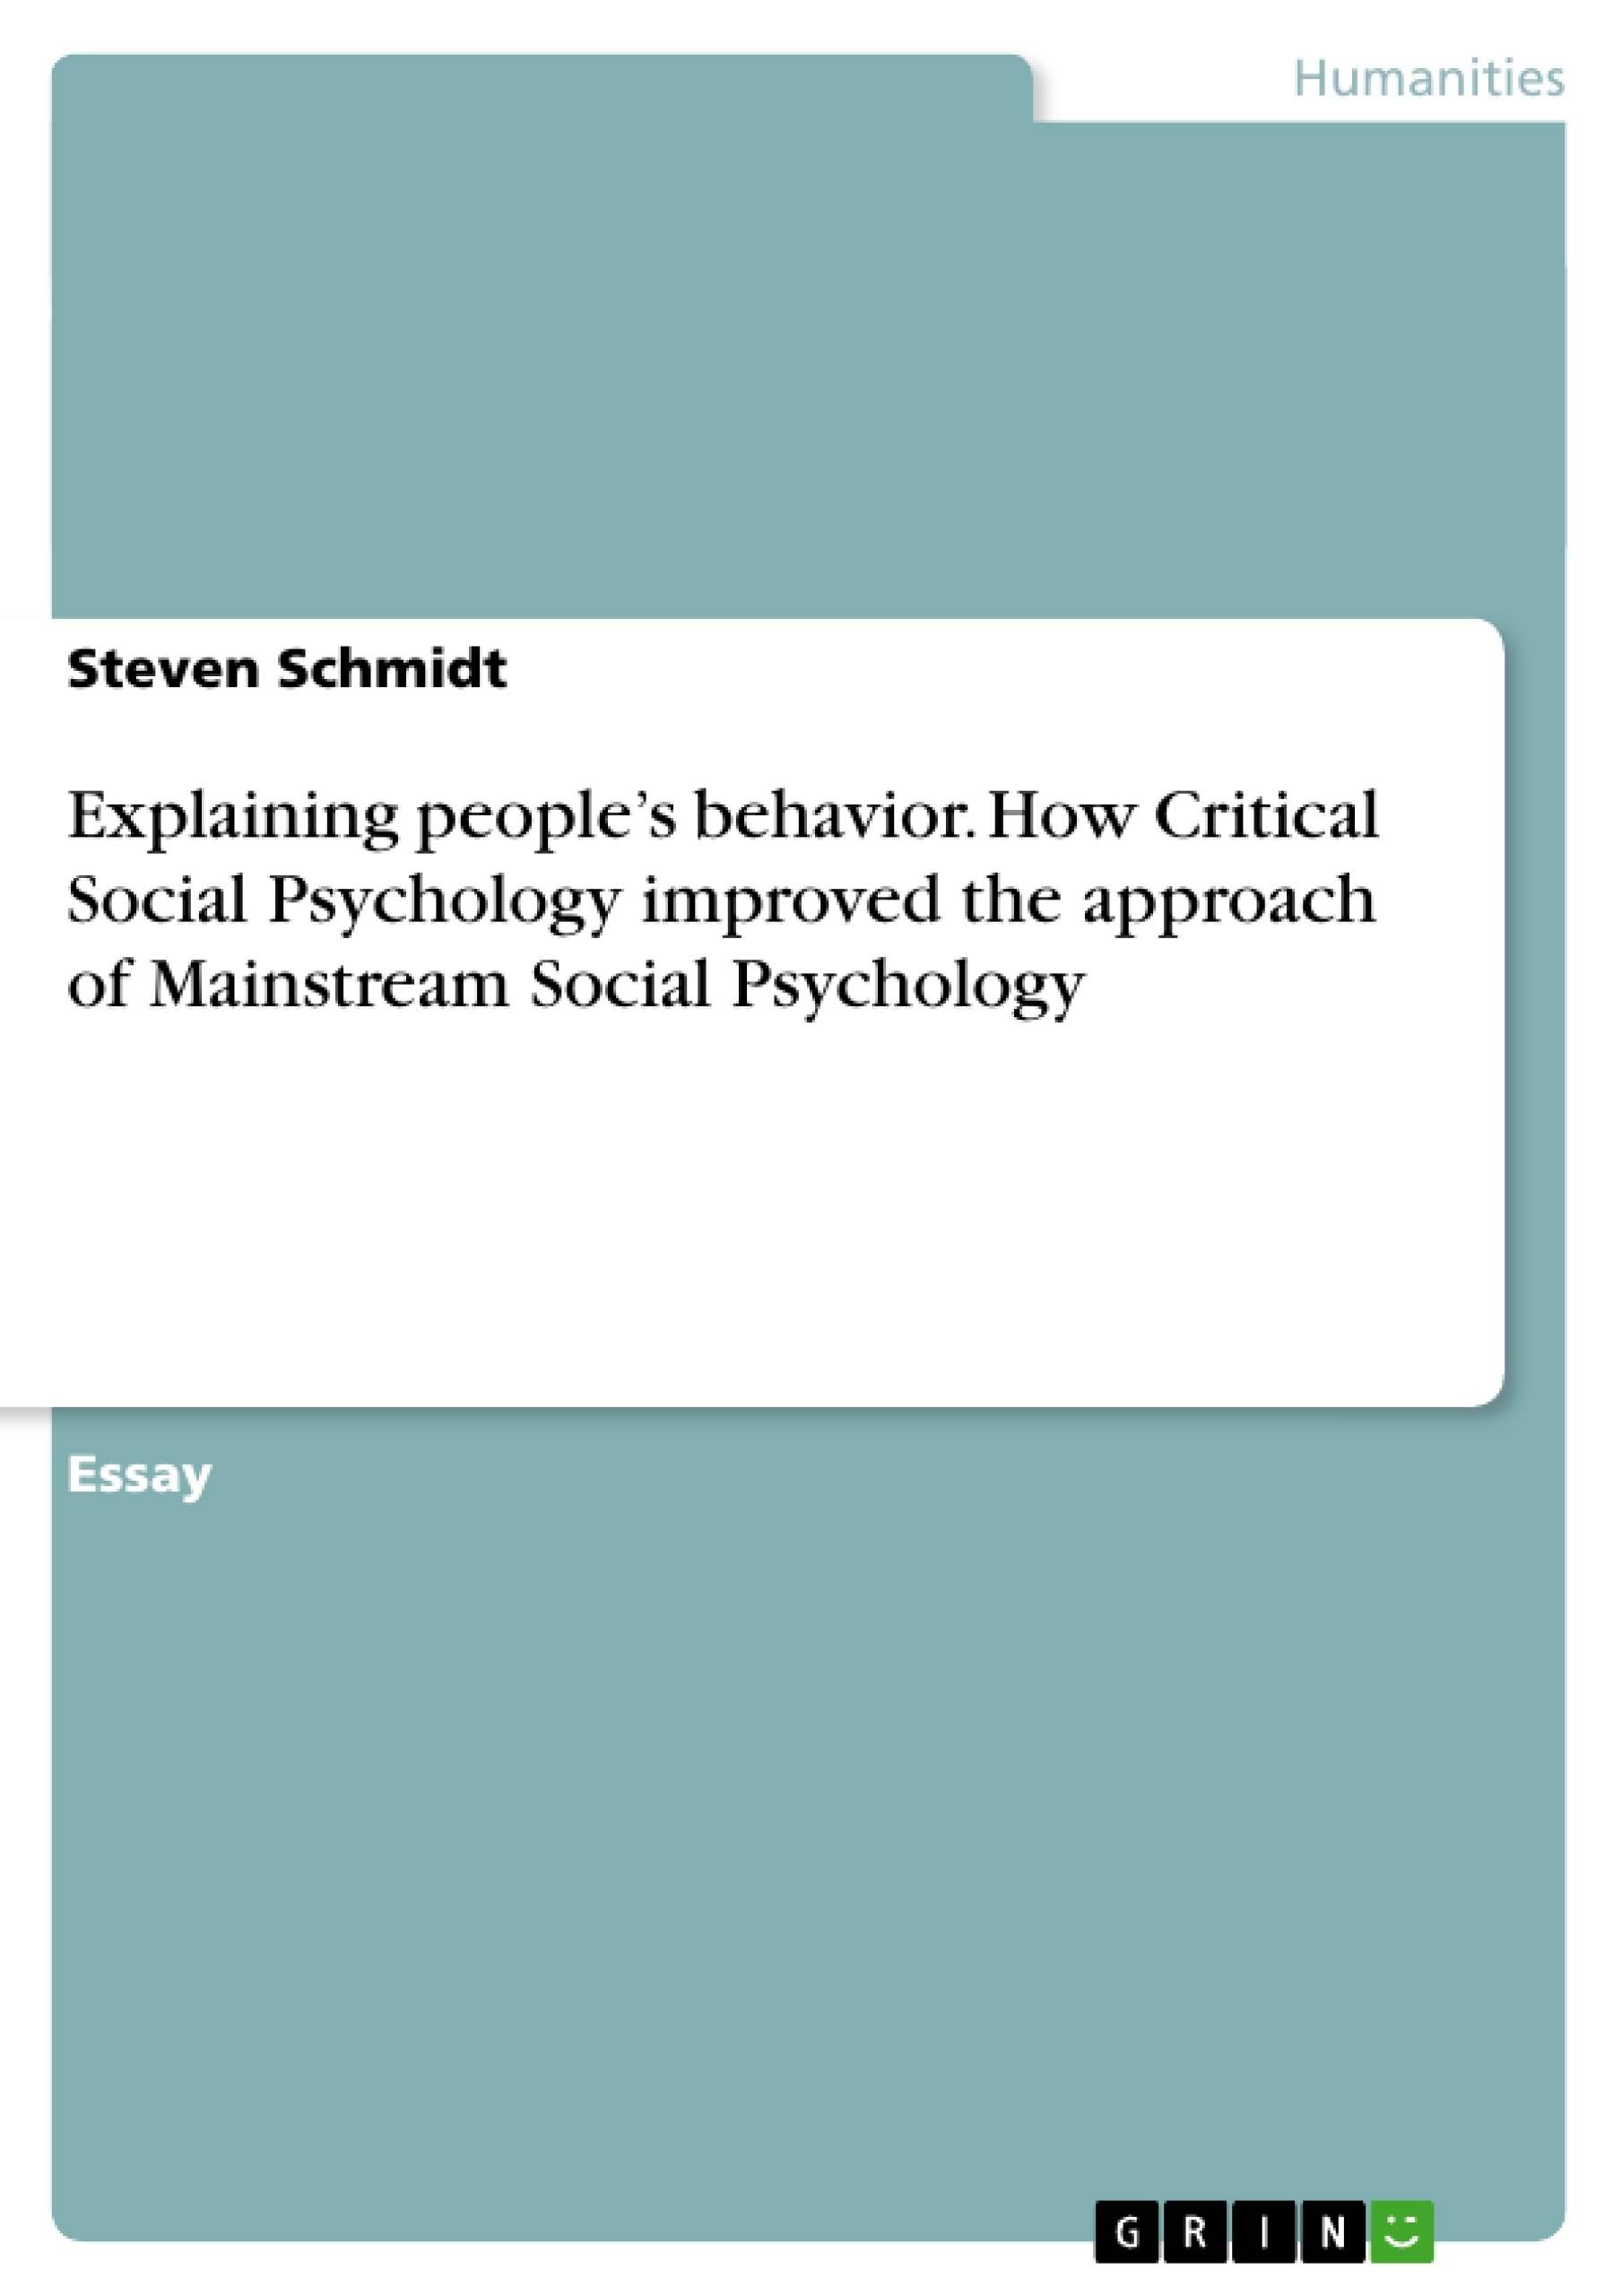 Title: Explaining people's behavior. How Critical Social Psychology improved the approach of Mainstream Social Psychology